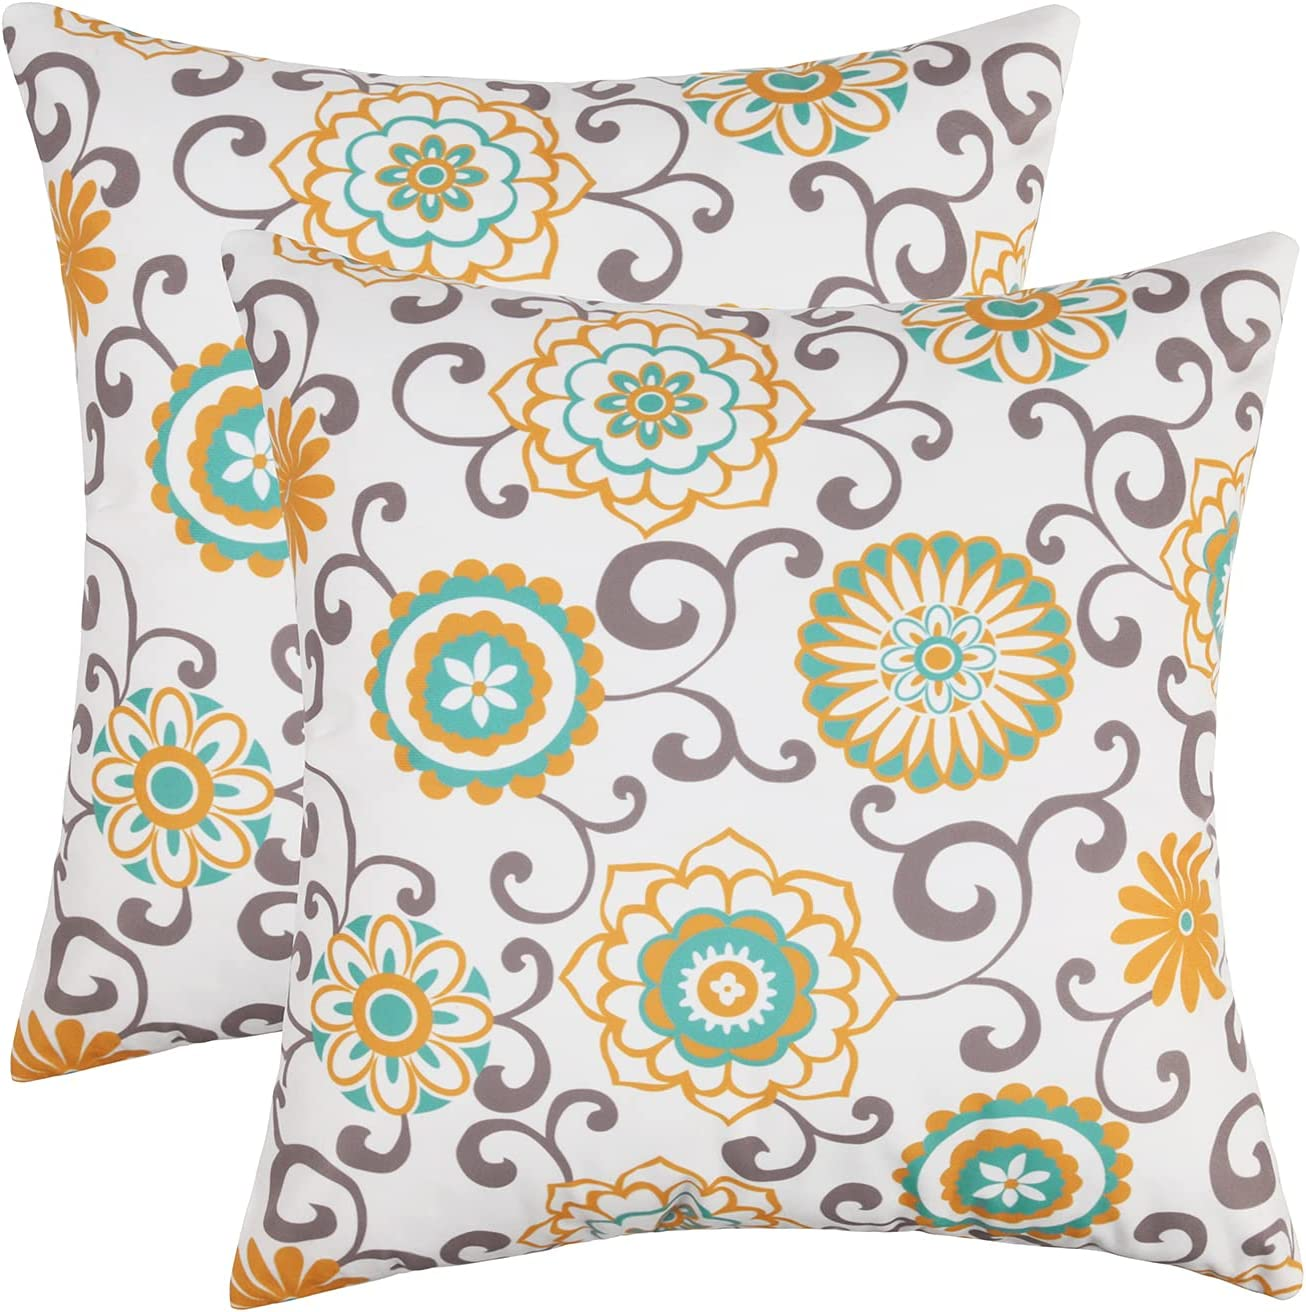 Adabana Max 80% OFF Flower Throw Pillow Covers 18x18 Set 2 Floral of Sale SALE% OFF